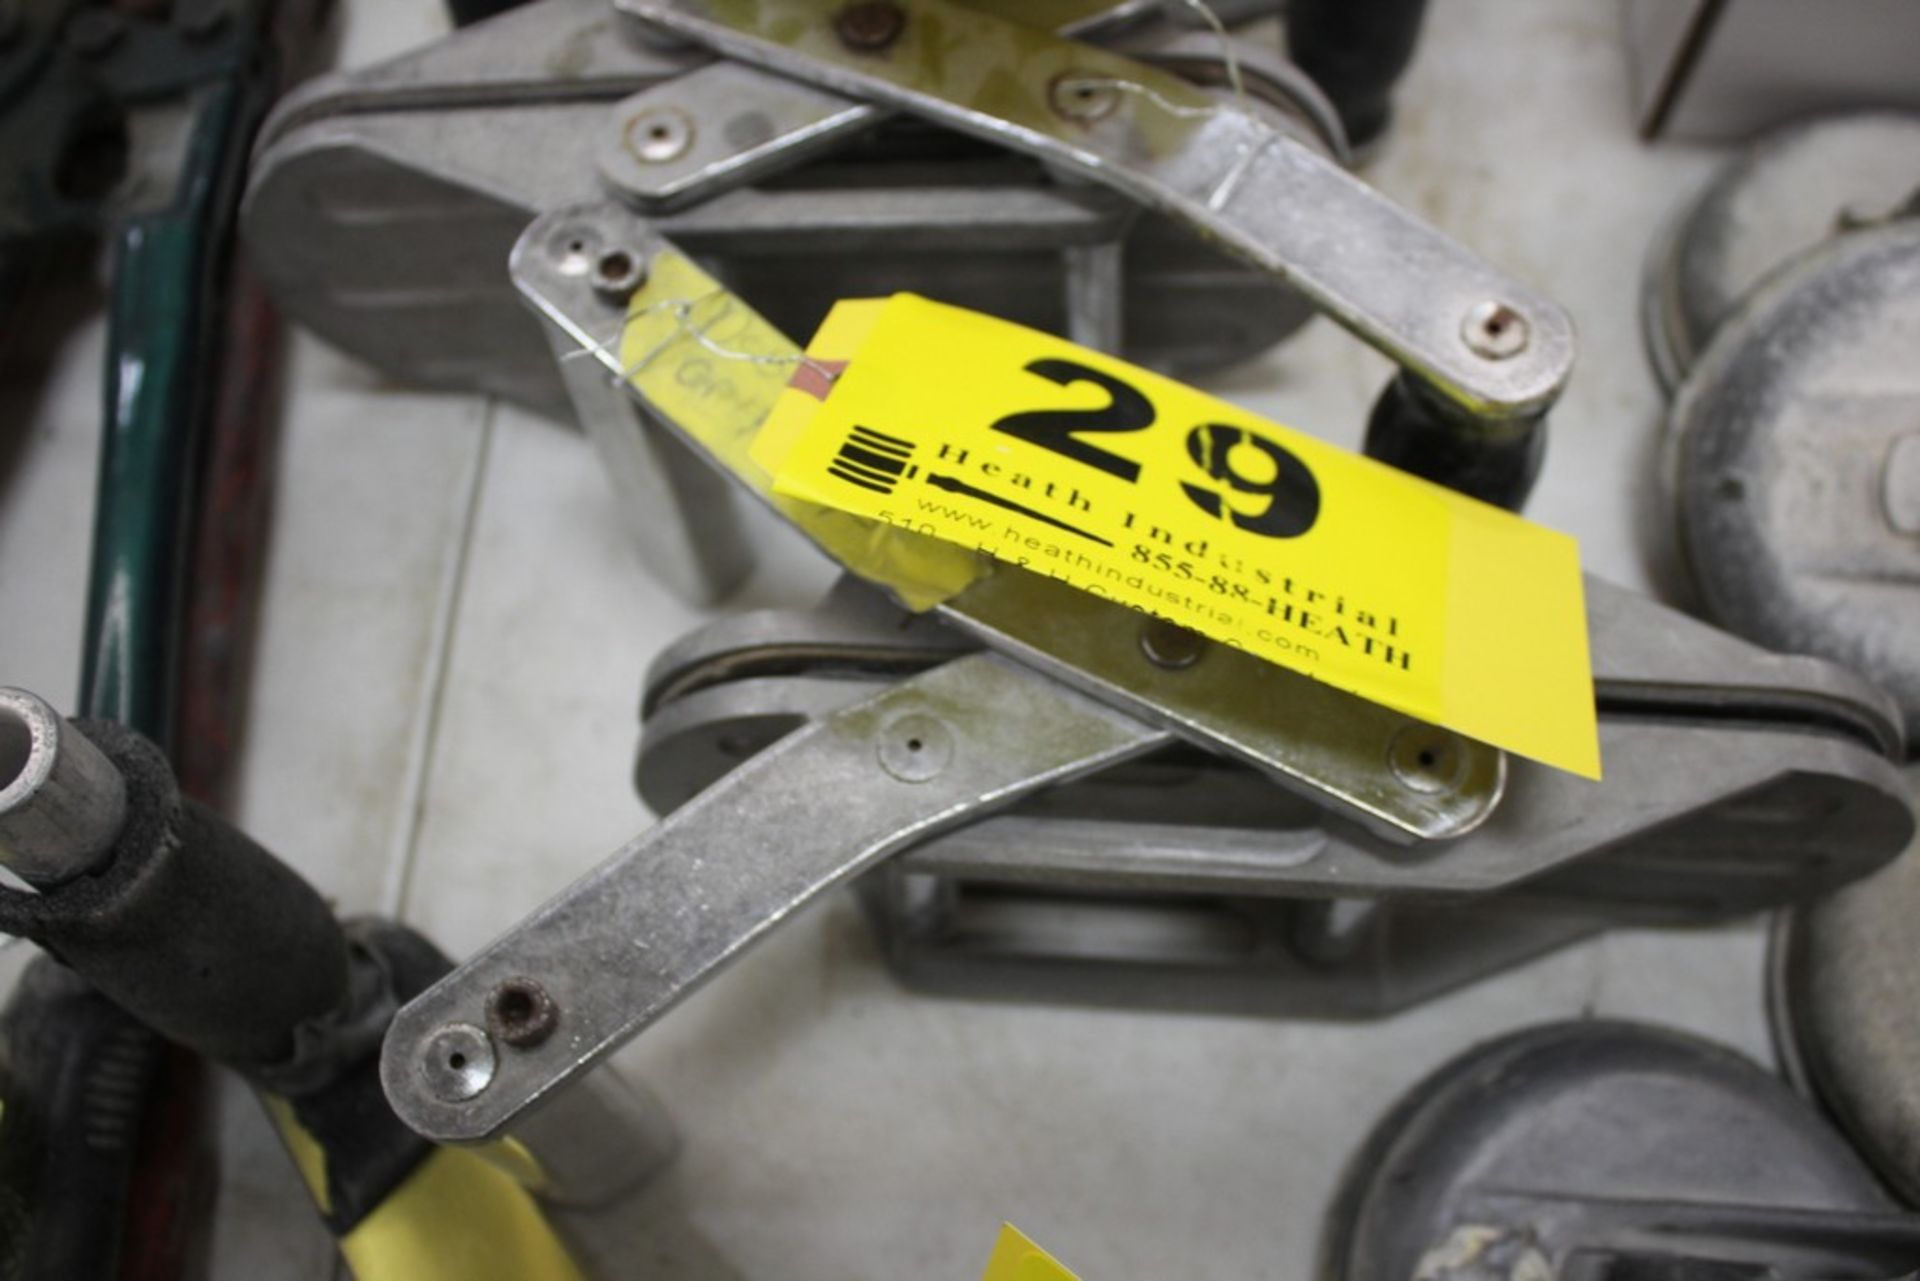 Lot 29 - DIAREX MATERIAL CLAMP STYLE LIFTER